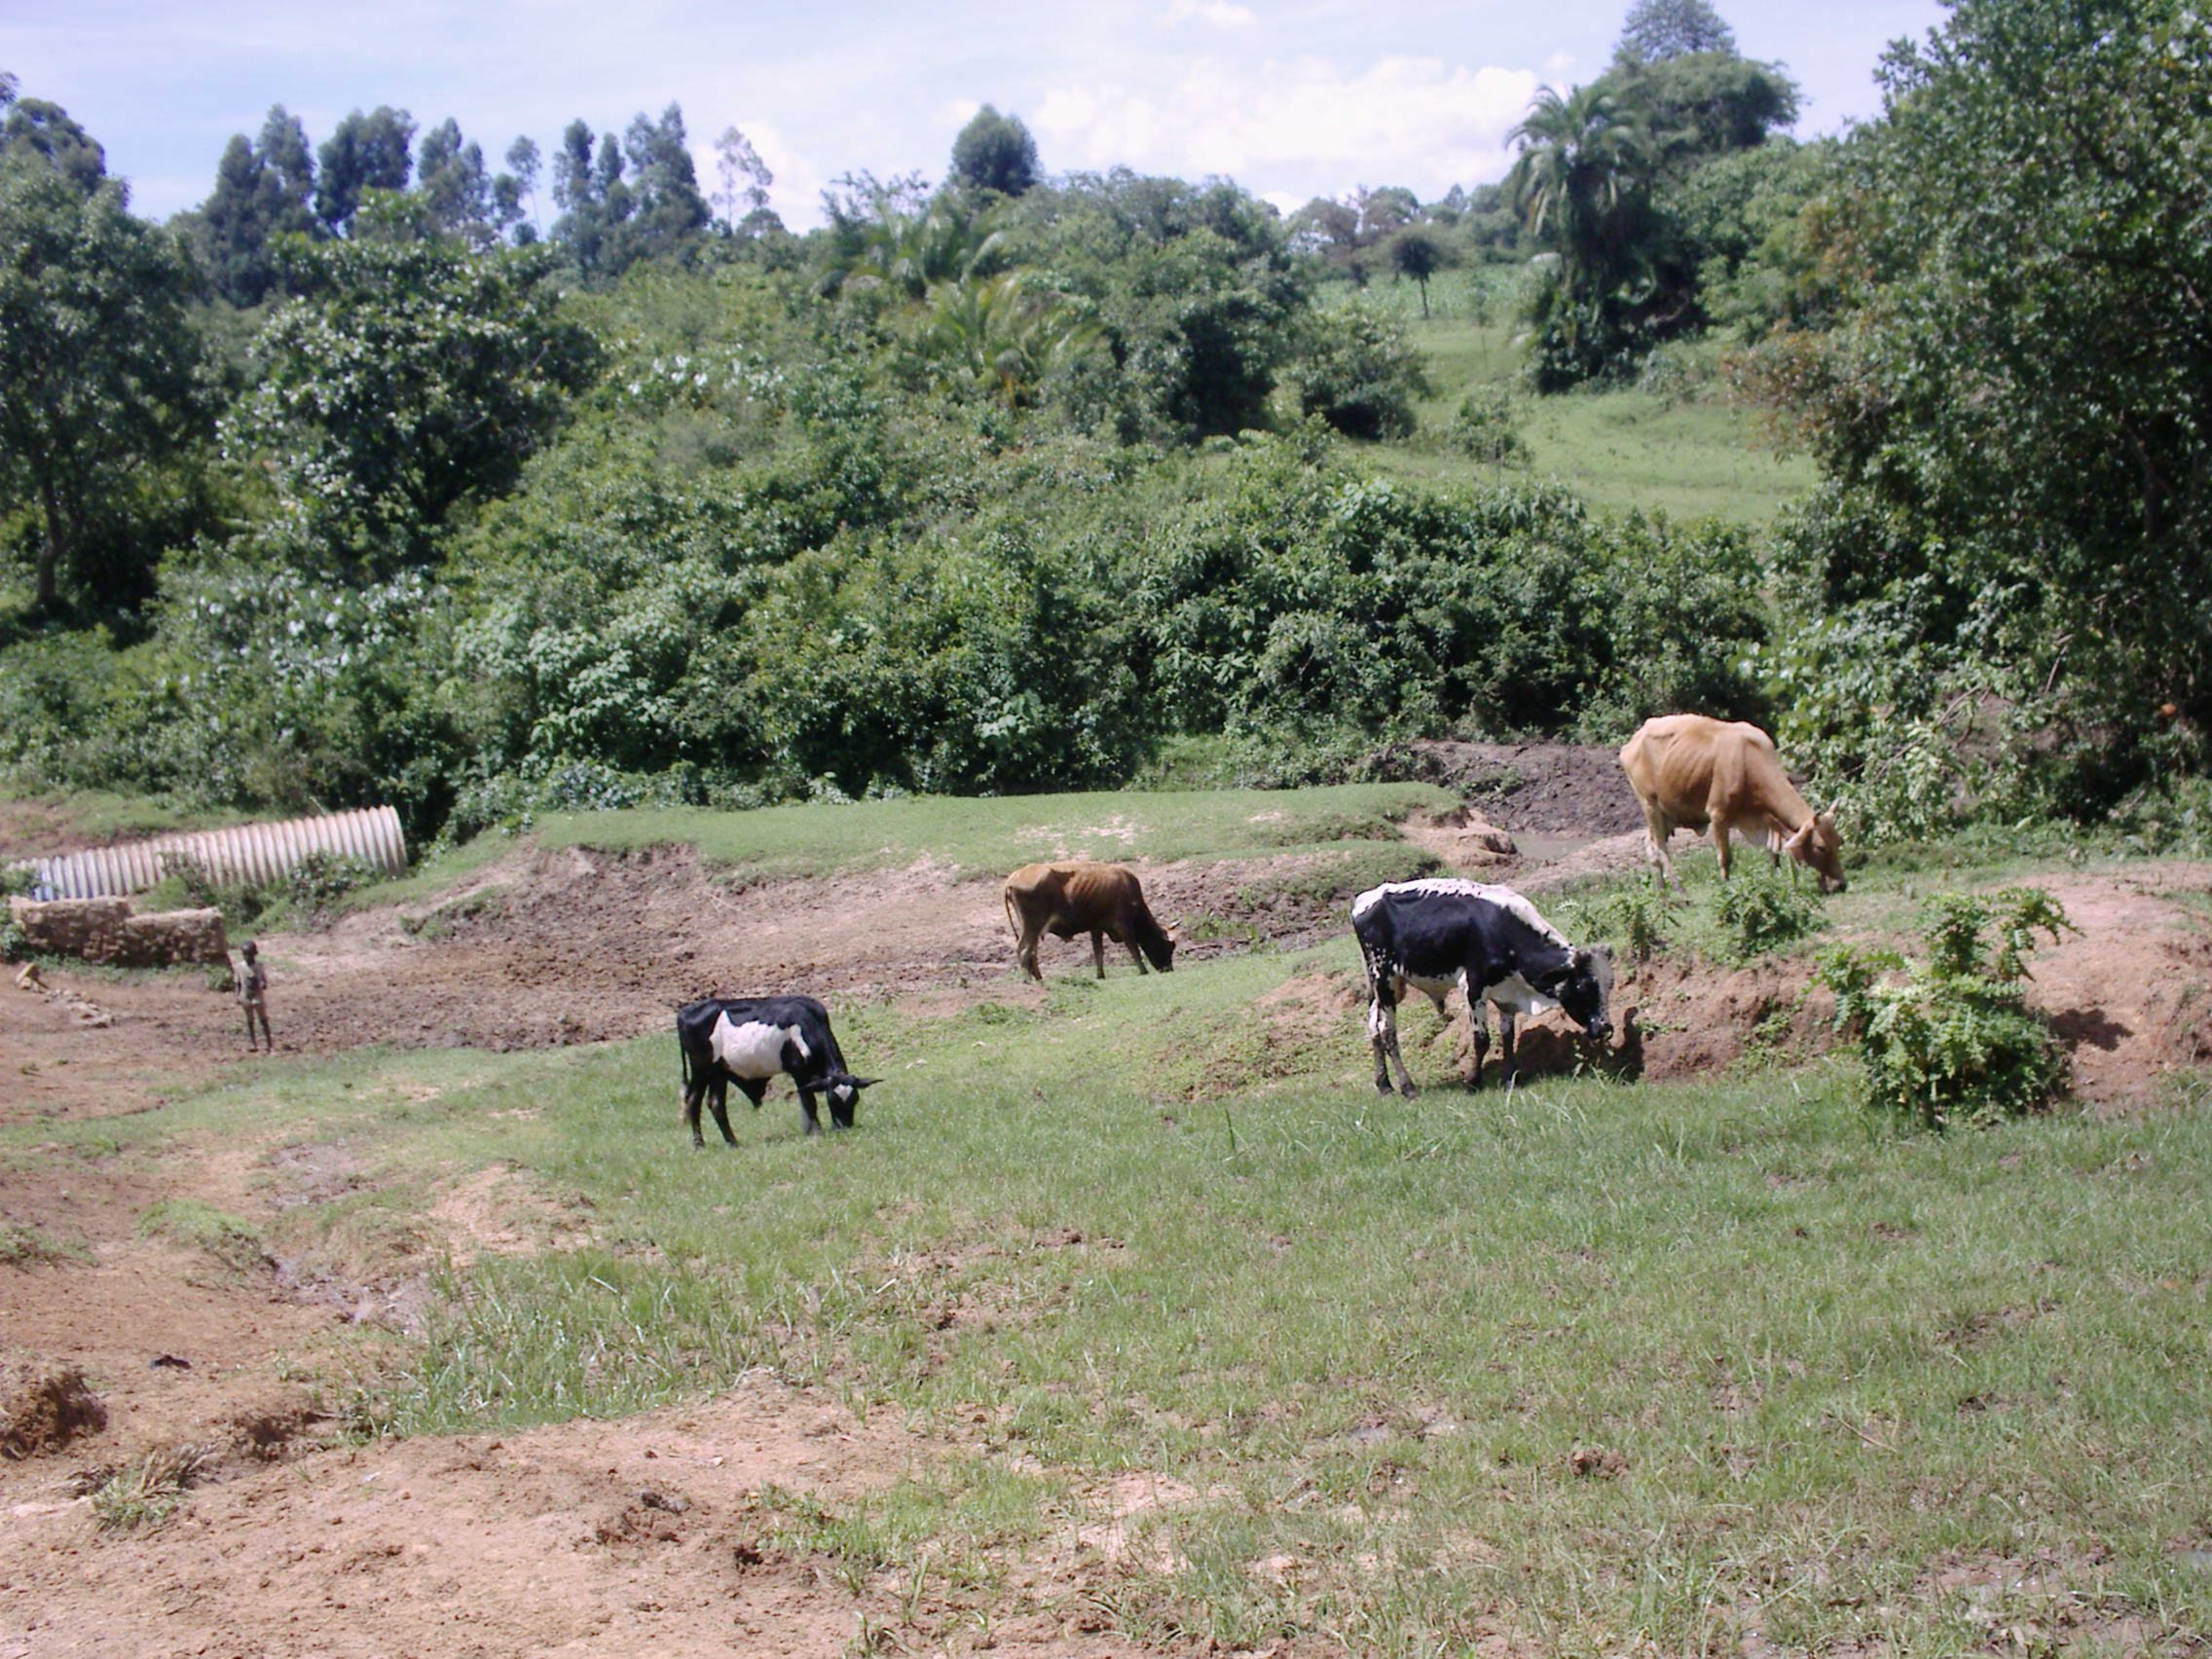 The Water Project : karima-mbakalo-grazing-livestock-who-also-drink-and-wash-in-the-stream-water-2